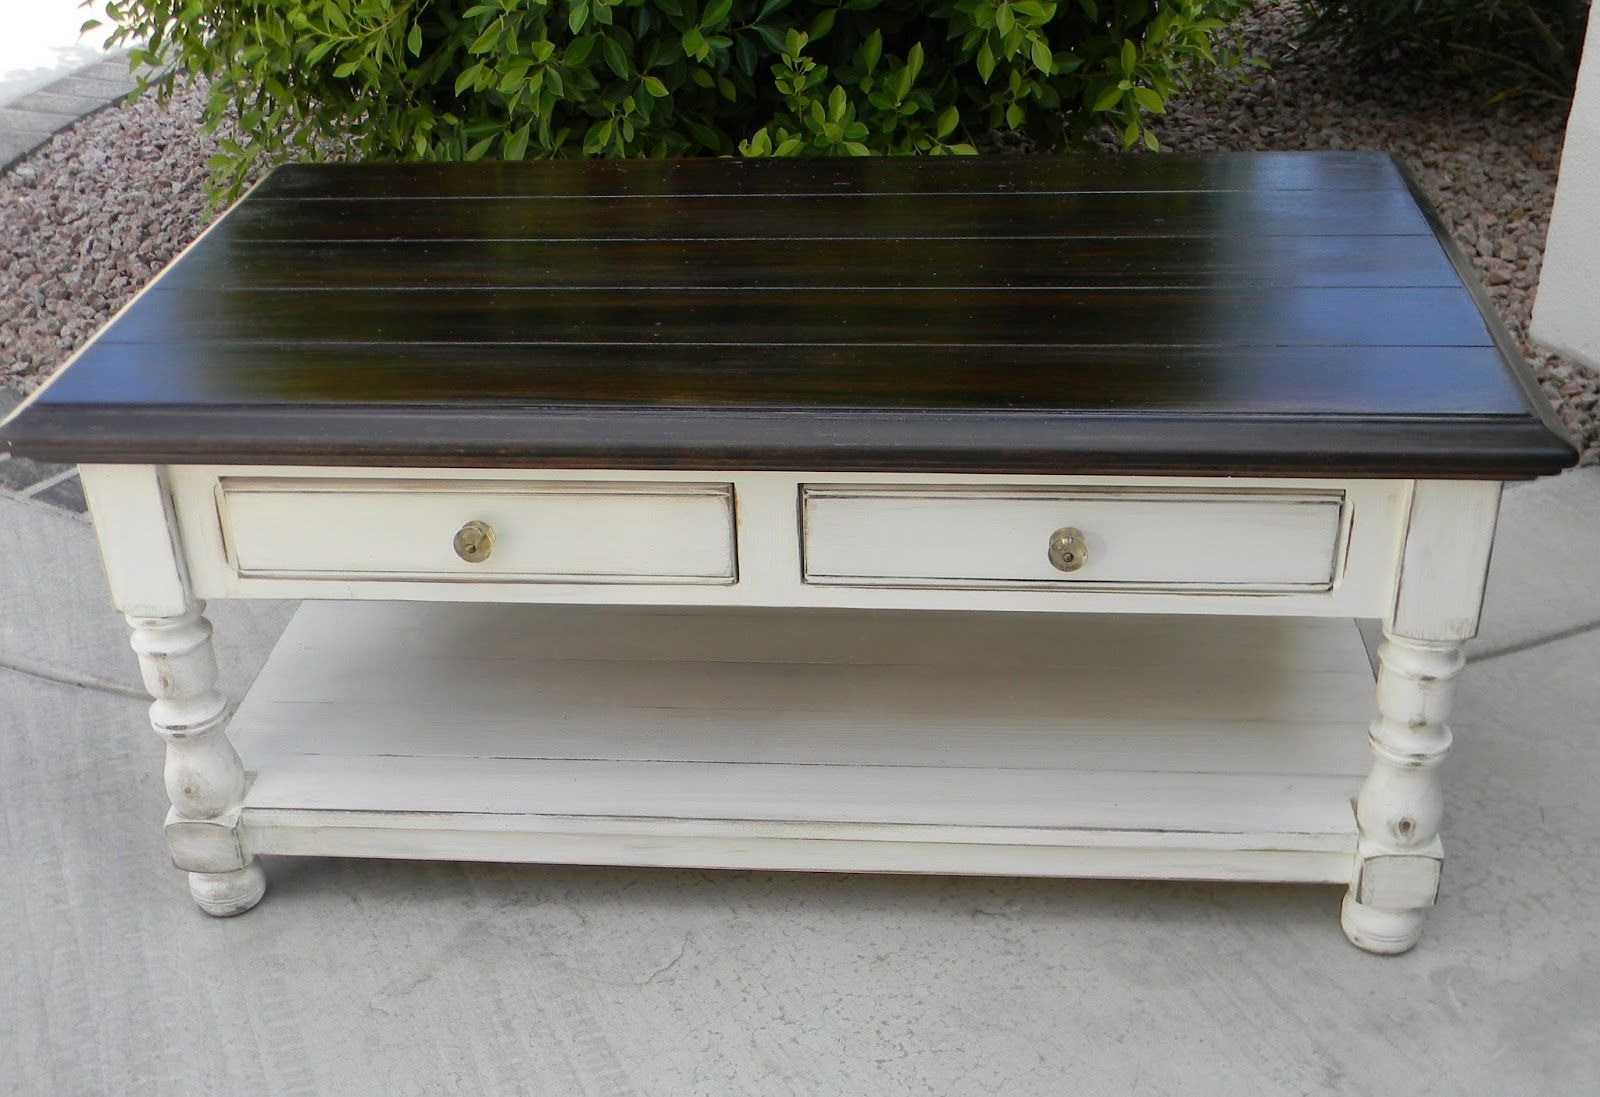 Little Bit of Paint Refinished Coffee Table Furniture